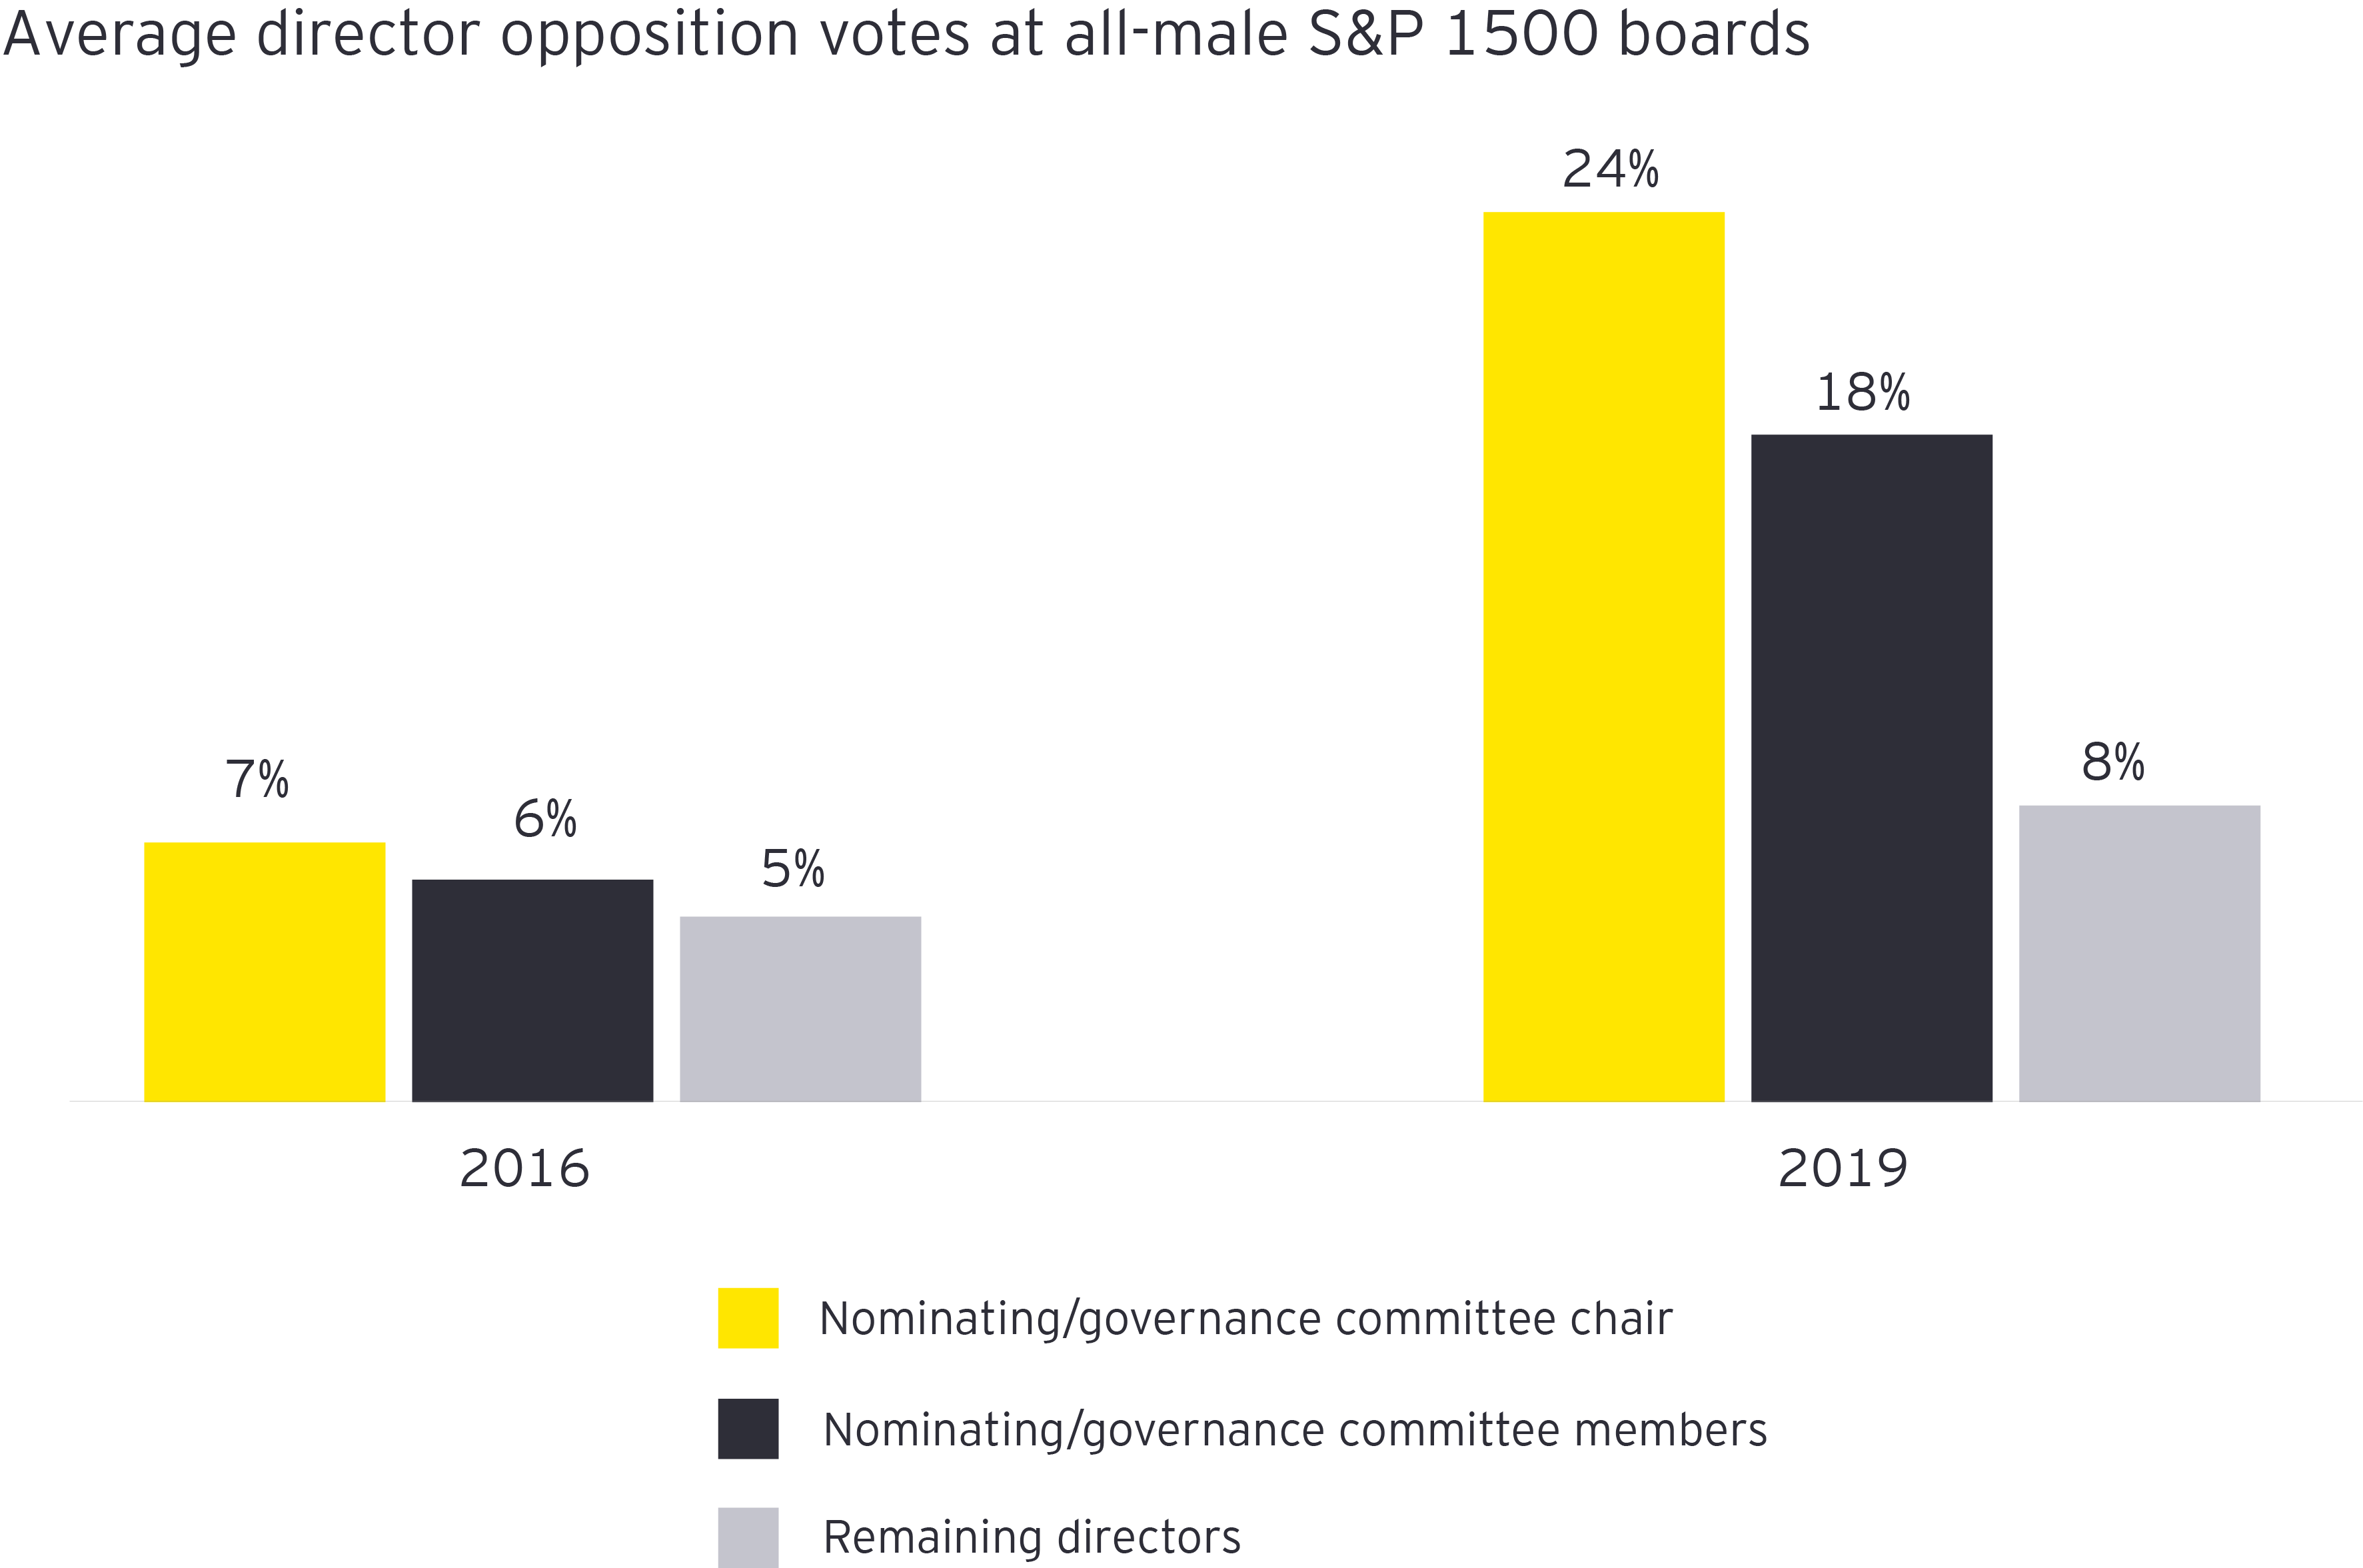 Average director opposition votes at all-male